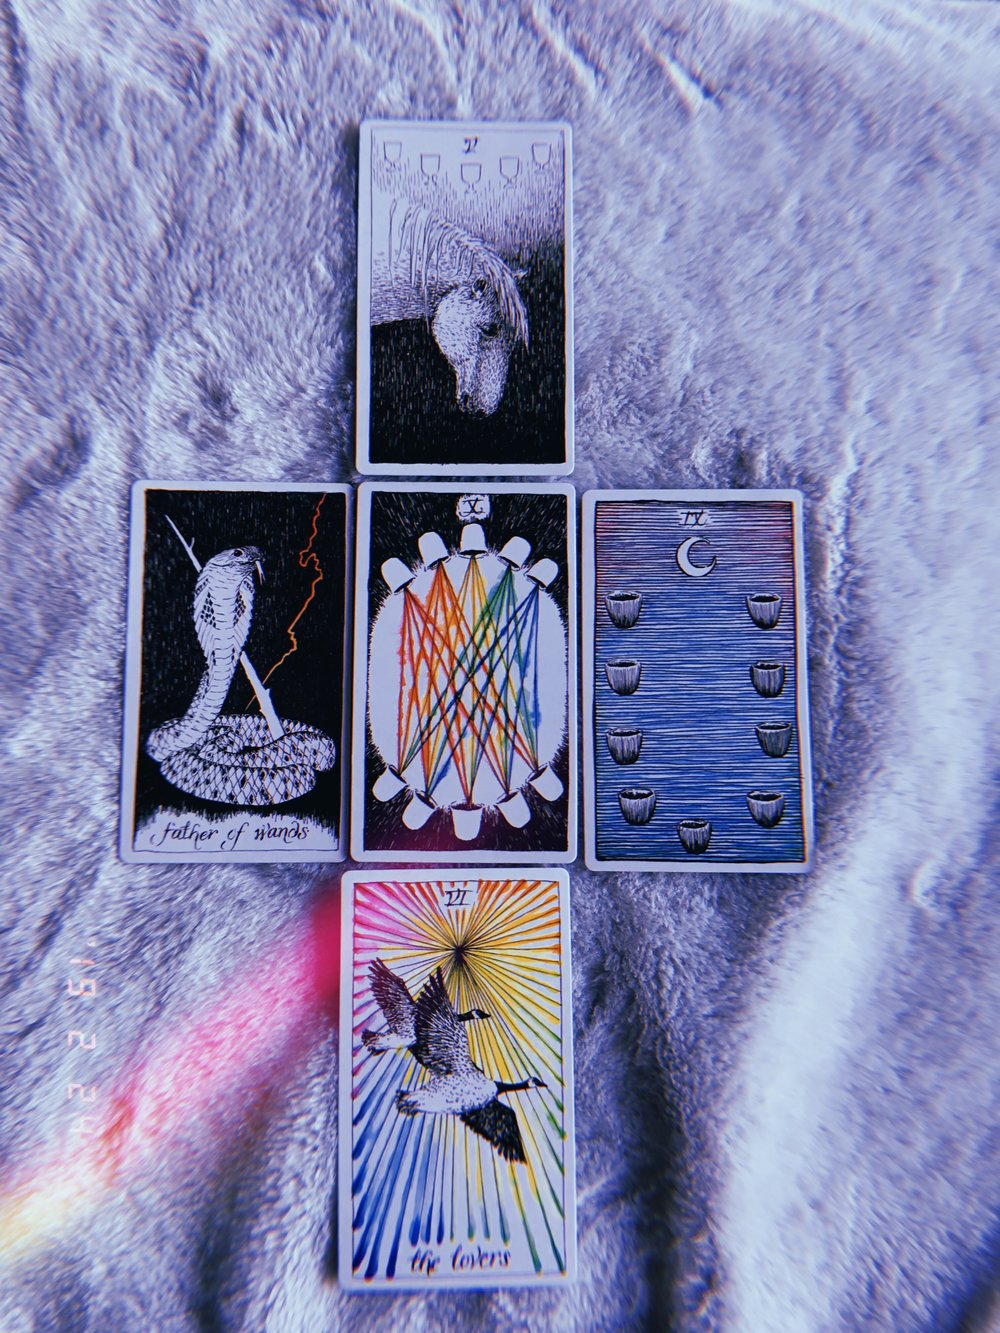 I drew two more cards and got this powerful five card reading